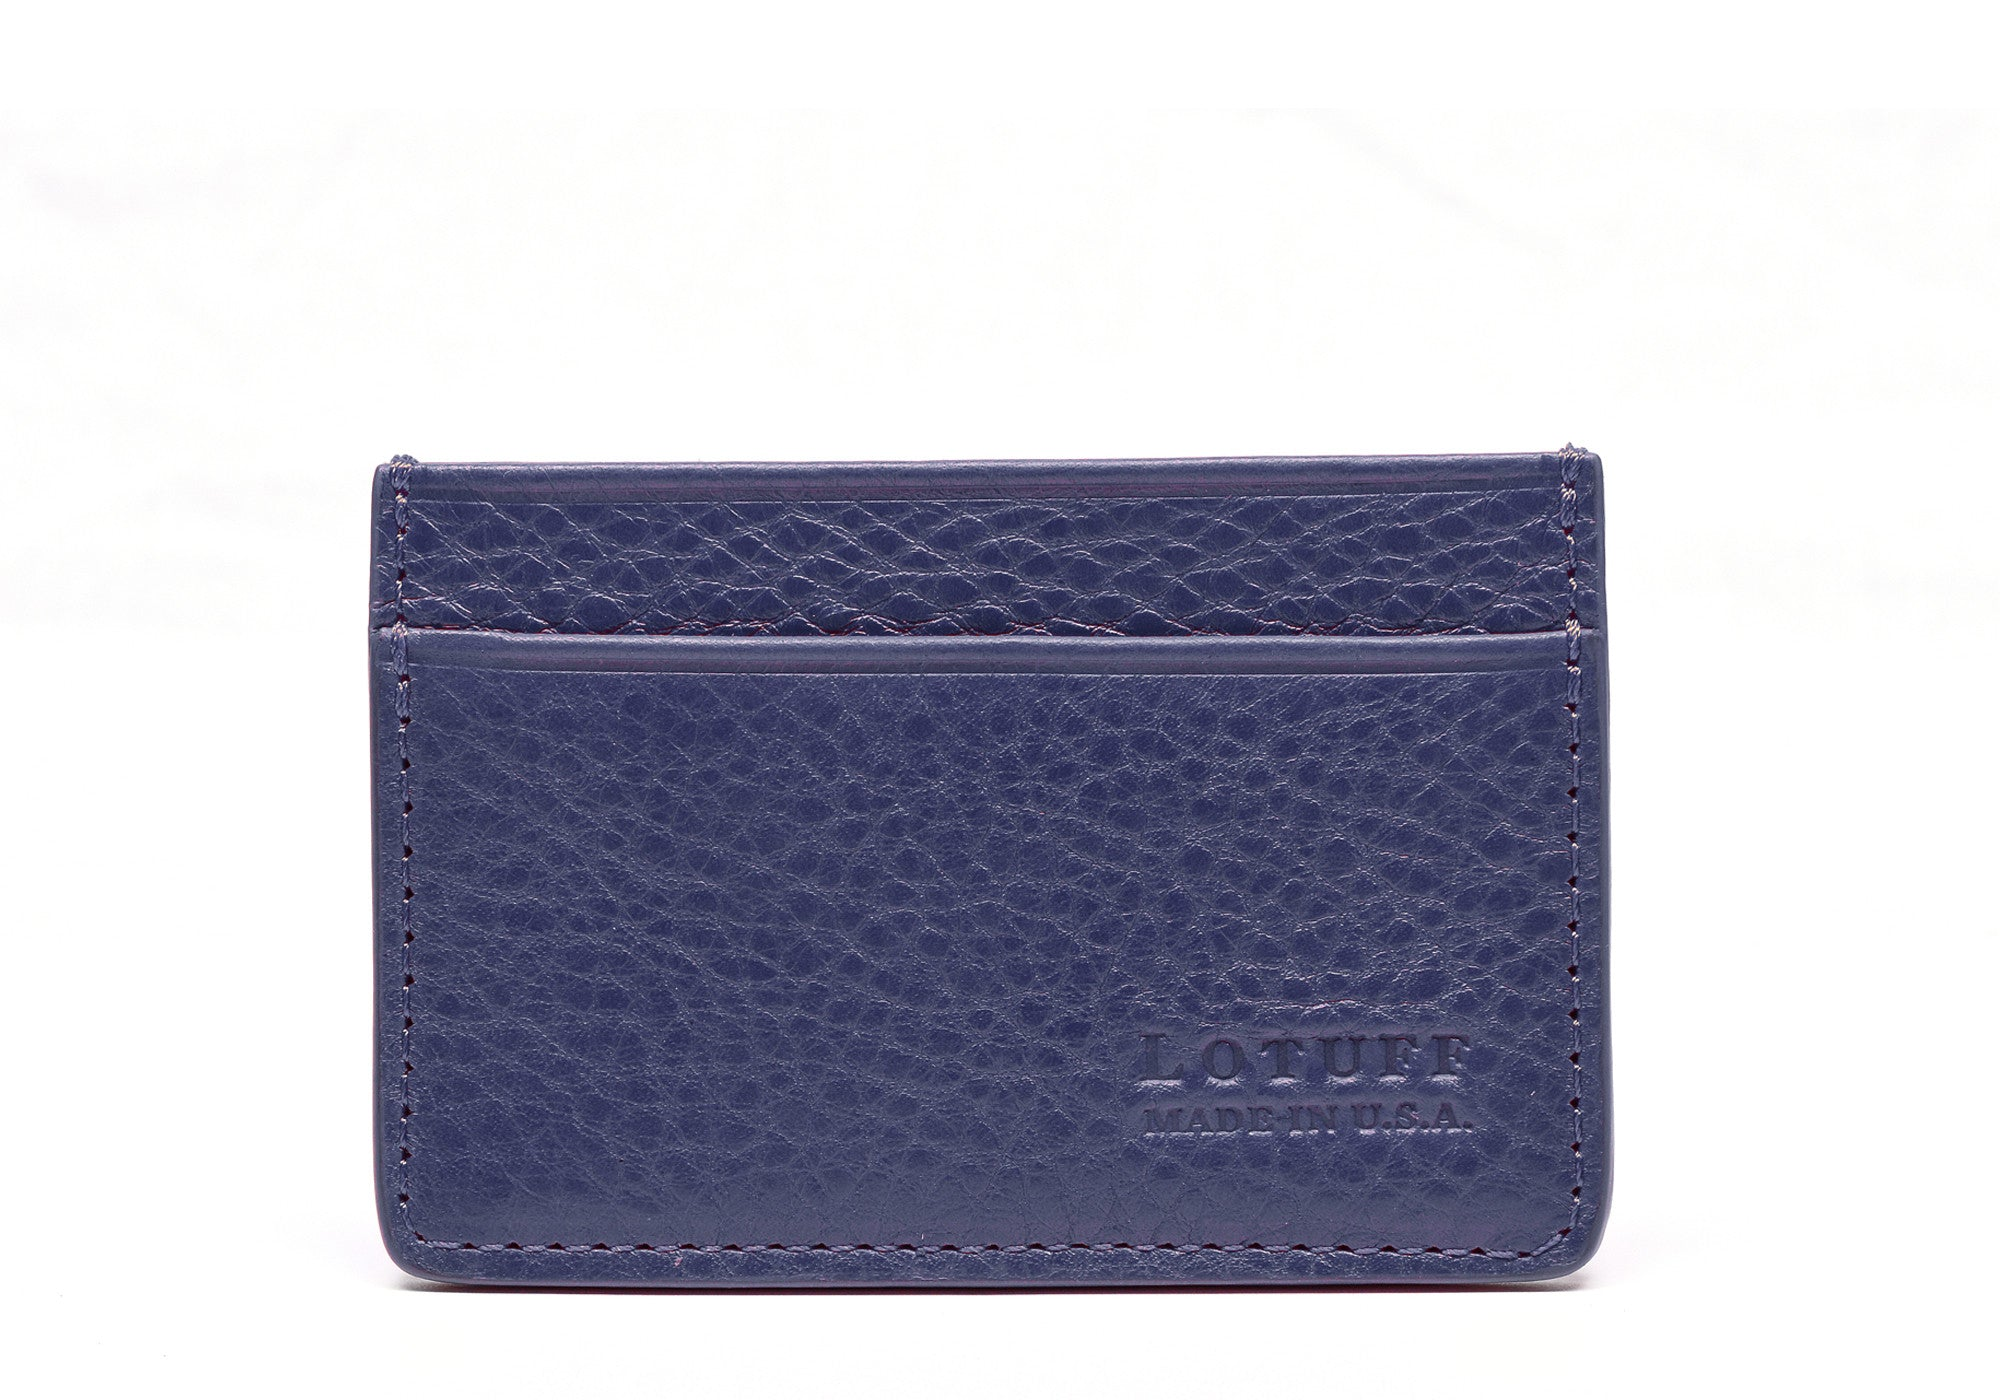 Front View Closed of Leather Credit Card Wallet Indigo